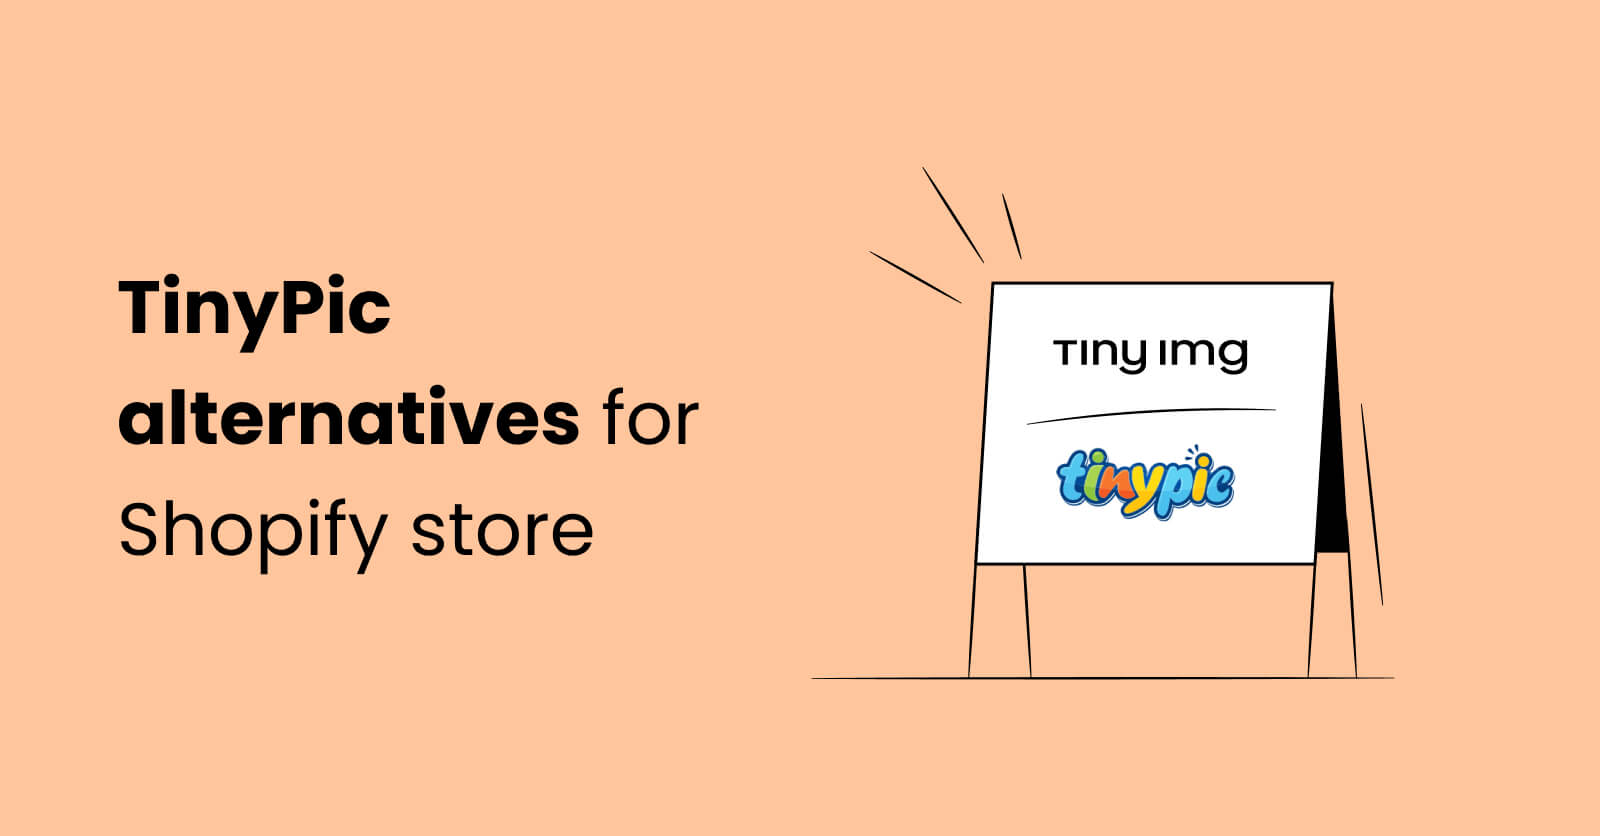 TinyPic alternatives for Shopify store image optimization